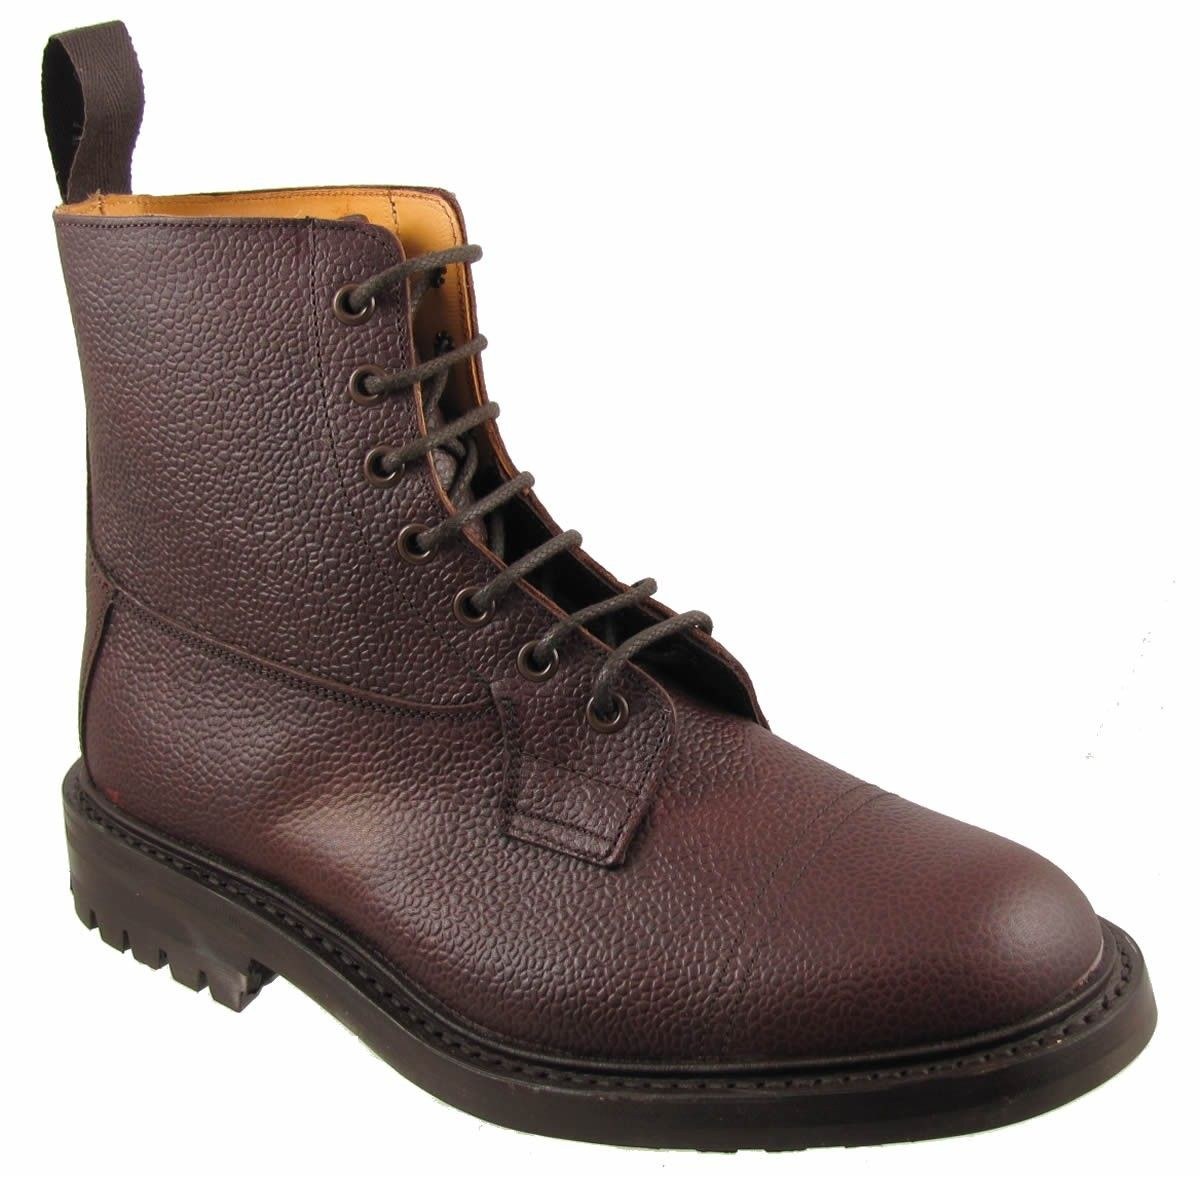 07086da84 Trickers Grasmere | Men`s Shoes | Shoes, Boots, Goodyear welt